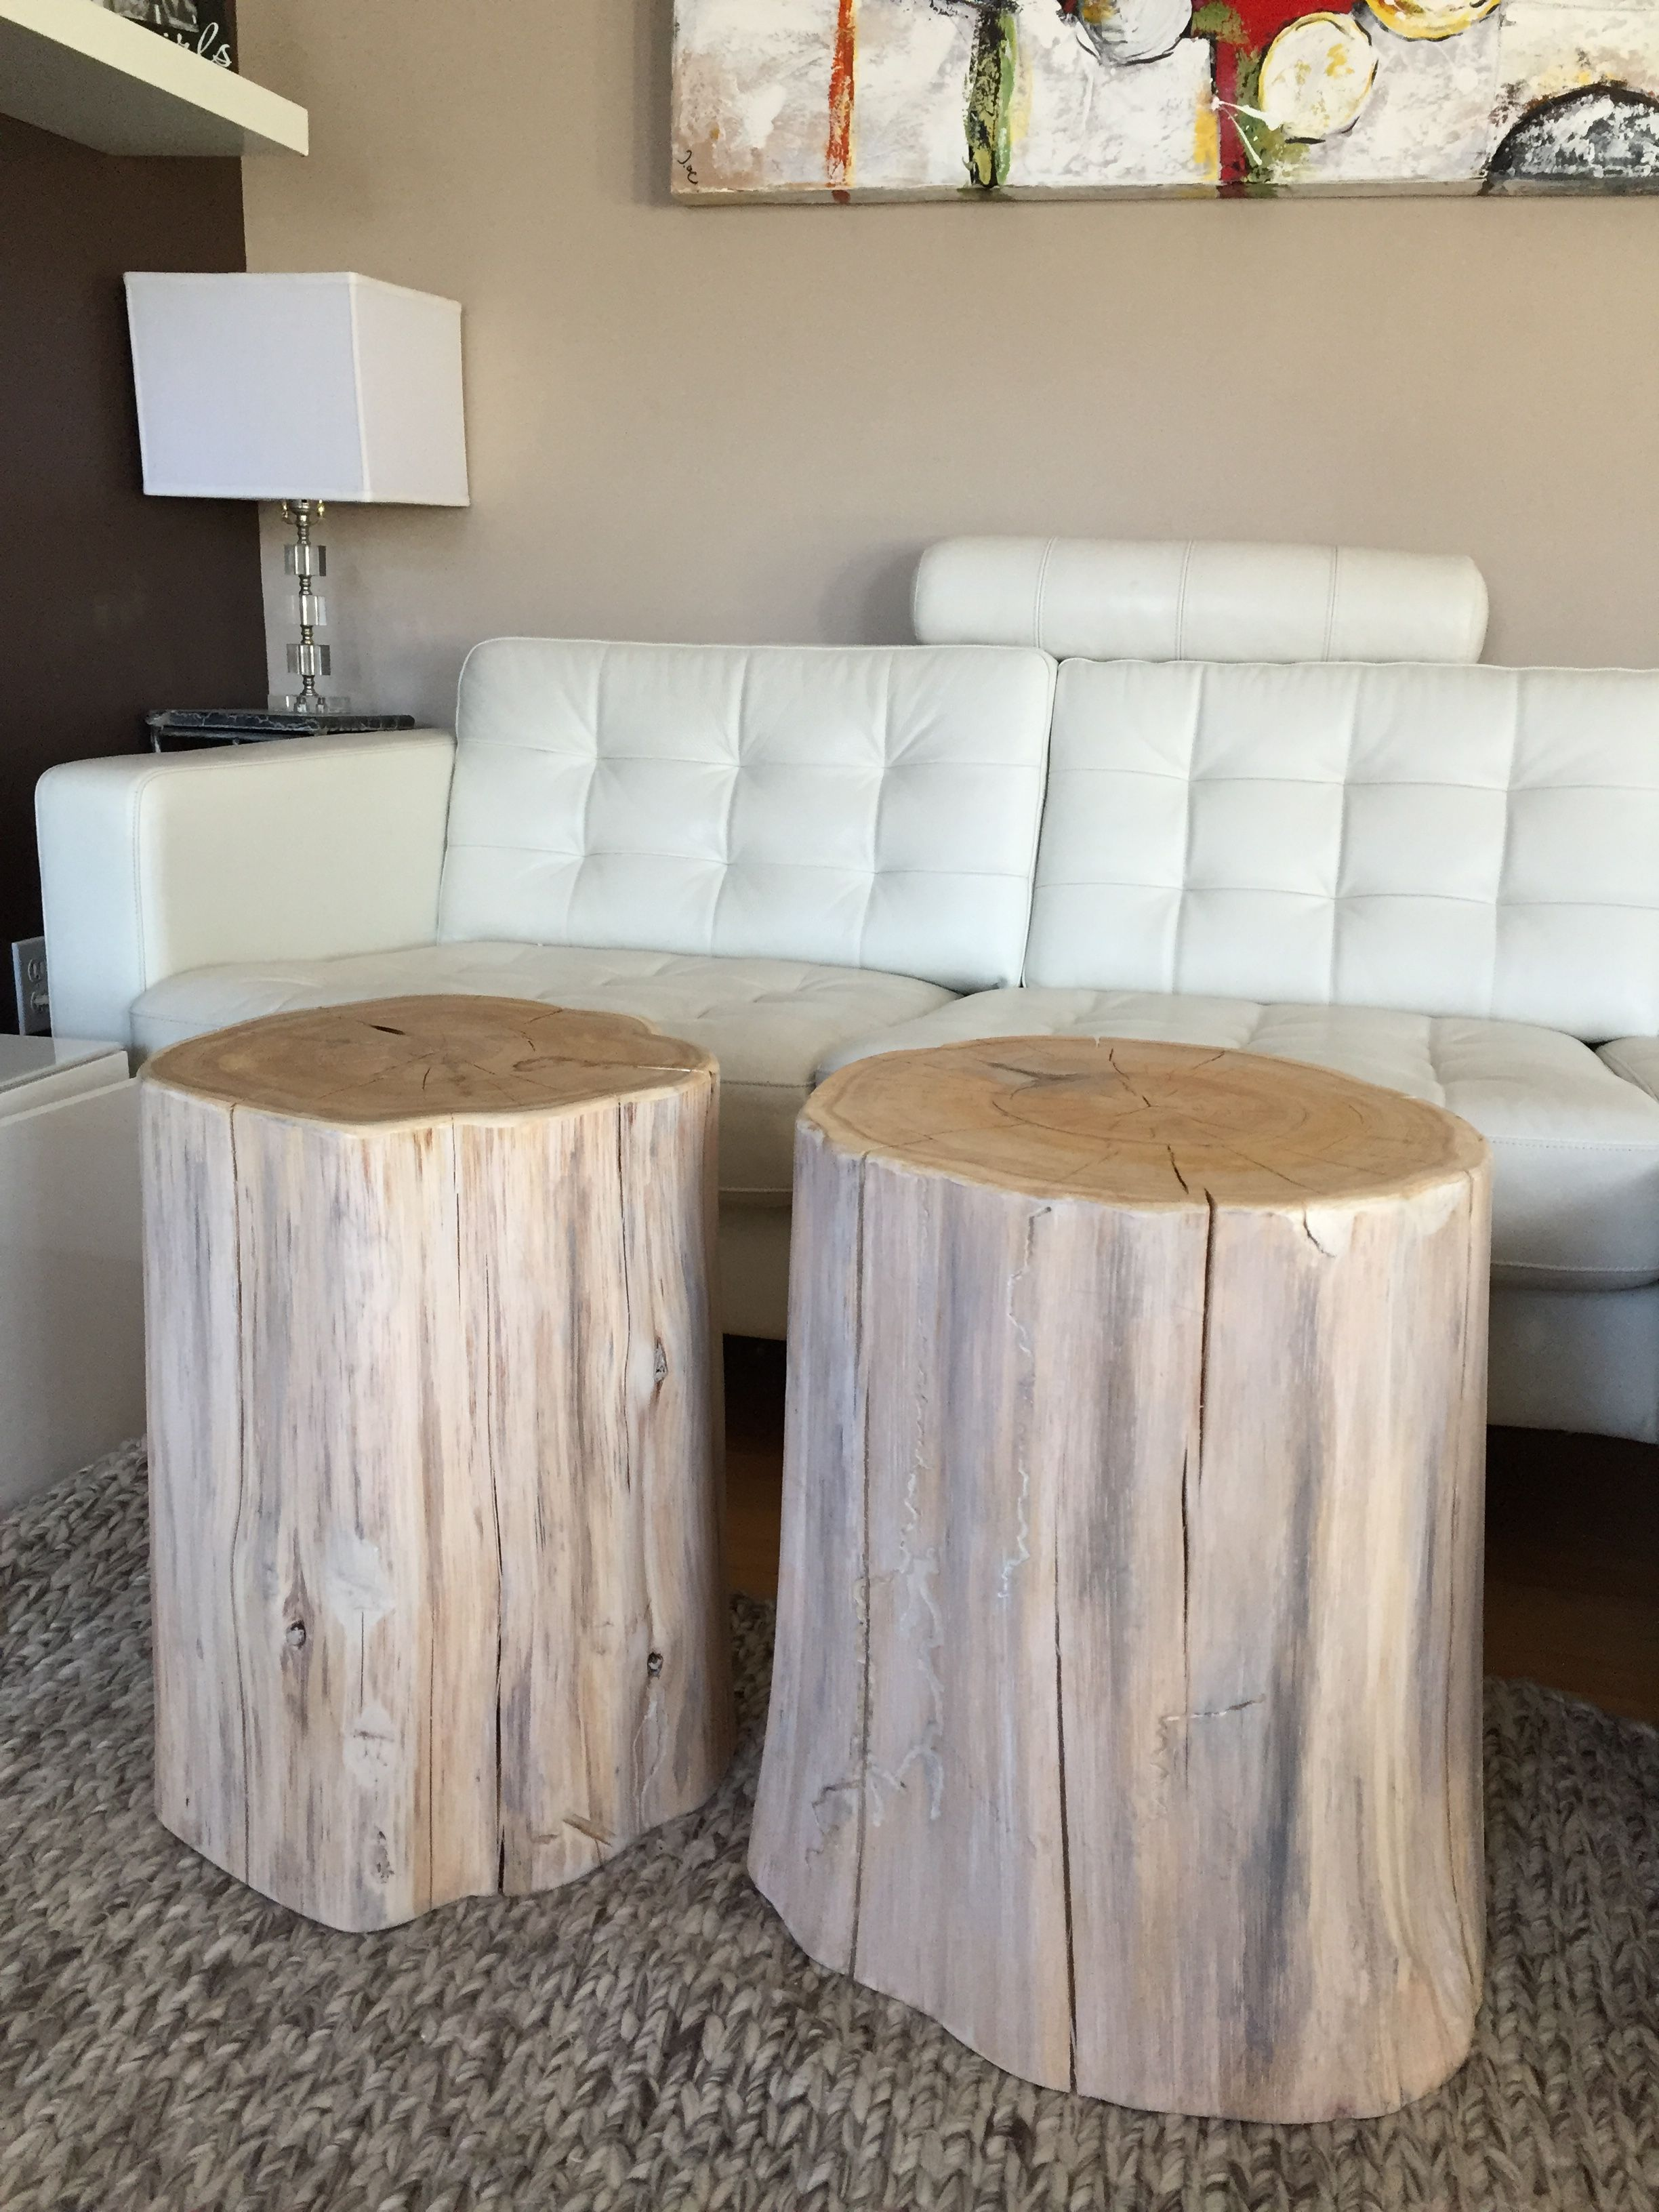 White Stumps Tables, Whitewashed Stump Side Table, Log Tables, Rustic Tables, Tree Trunk Table, Rustic Furniture, Stump End Table, Stump Coffee Tables,Root Coffee Table,